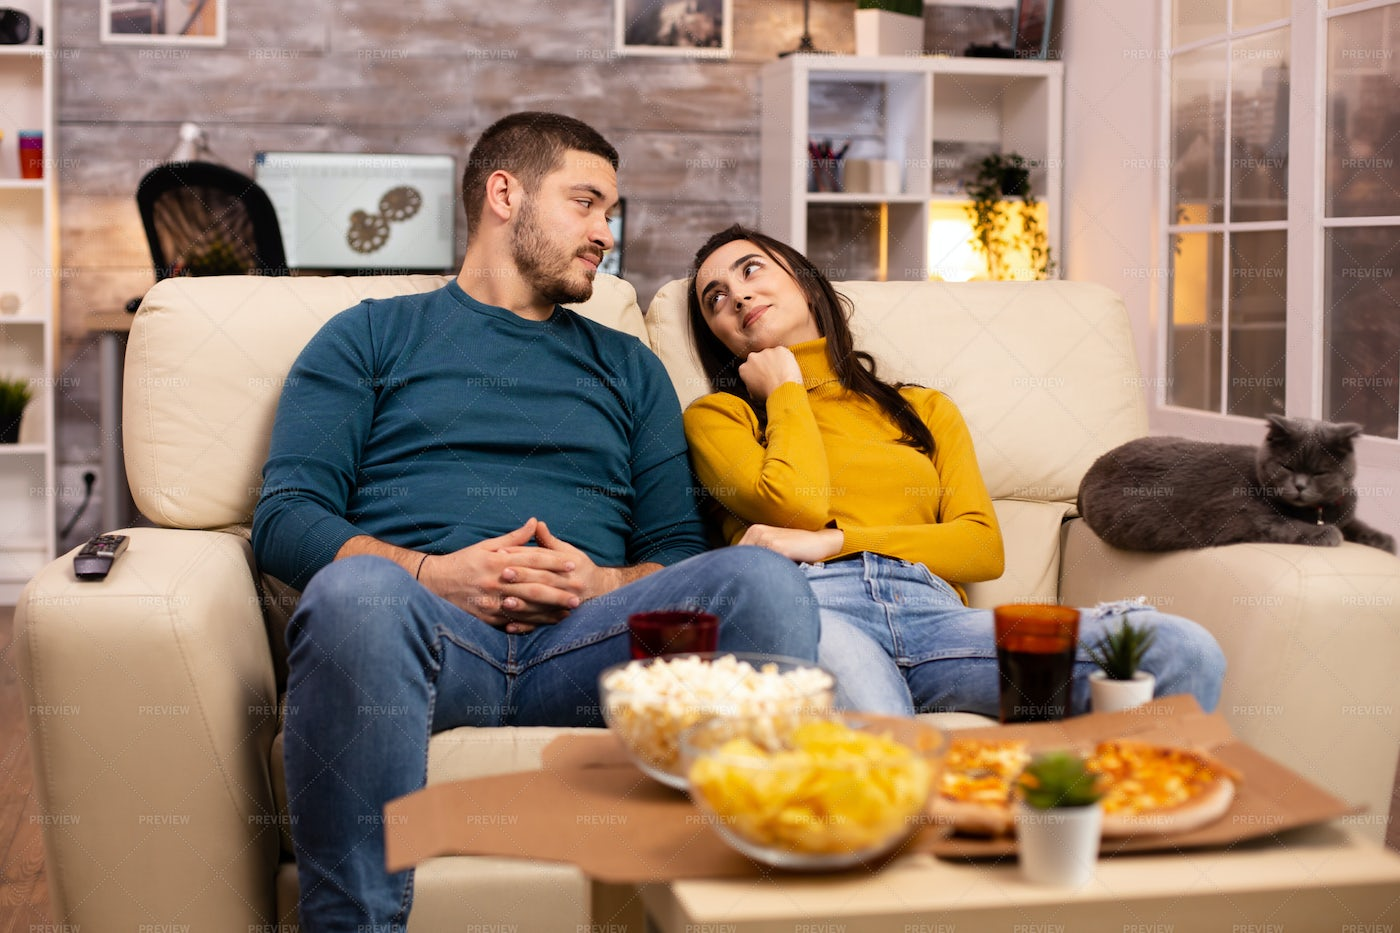 Couple Staring At Each Other: Stock Photos